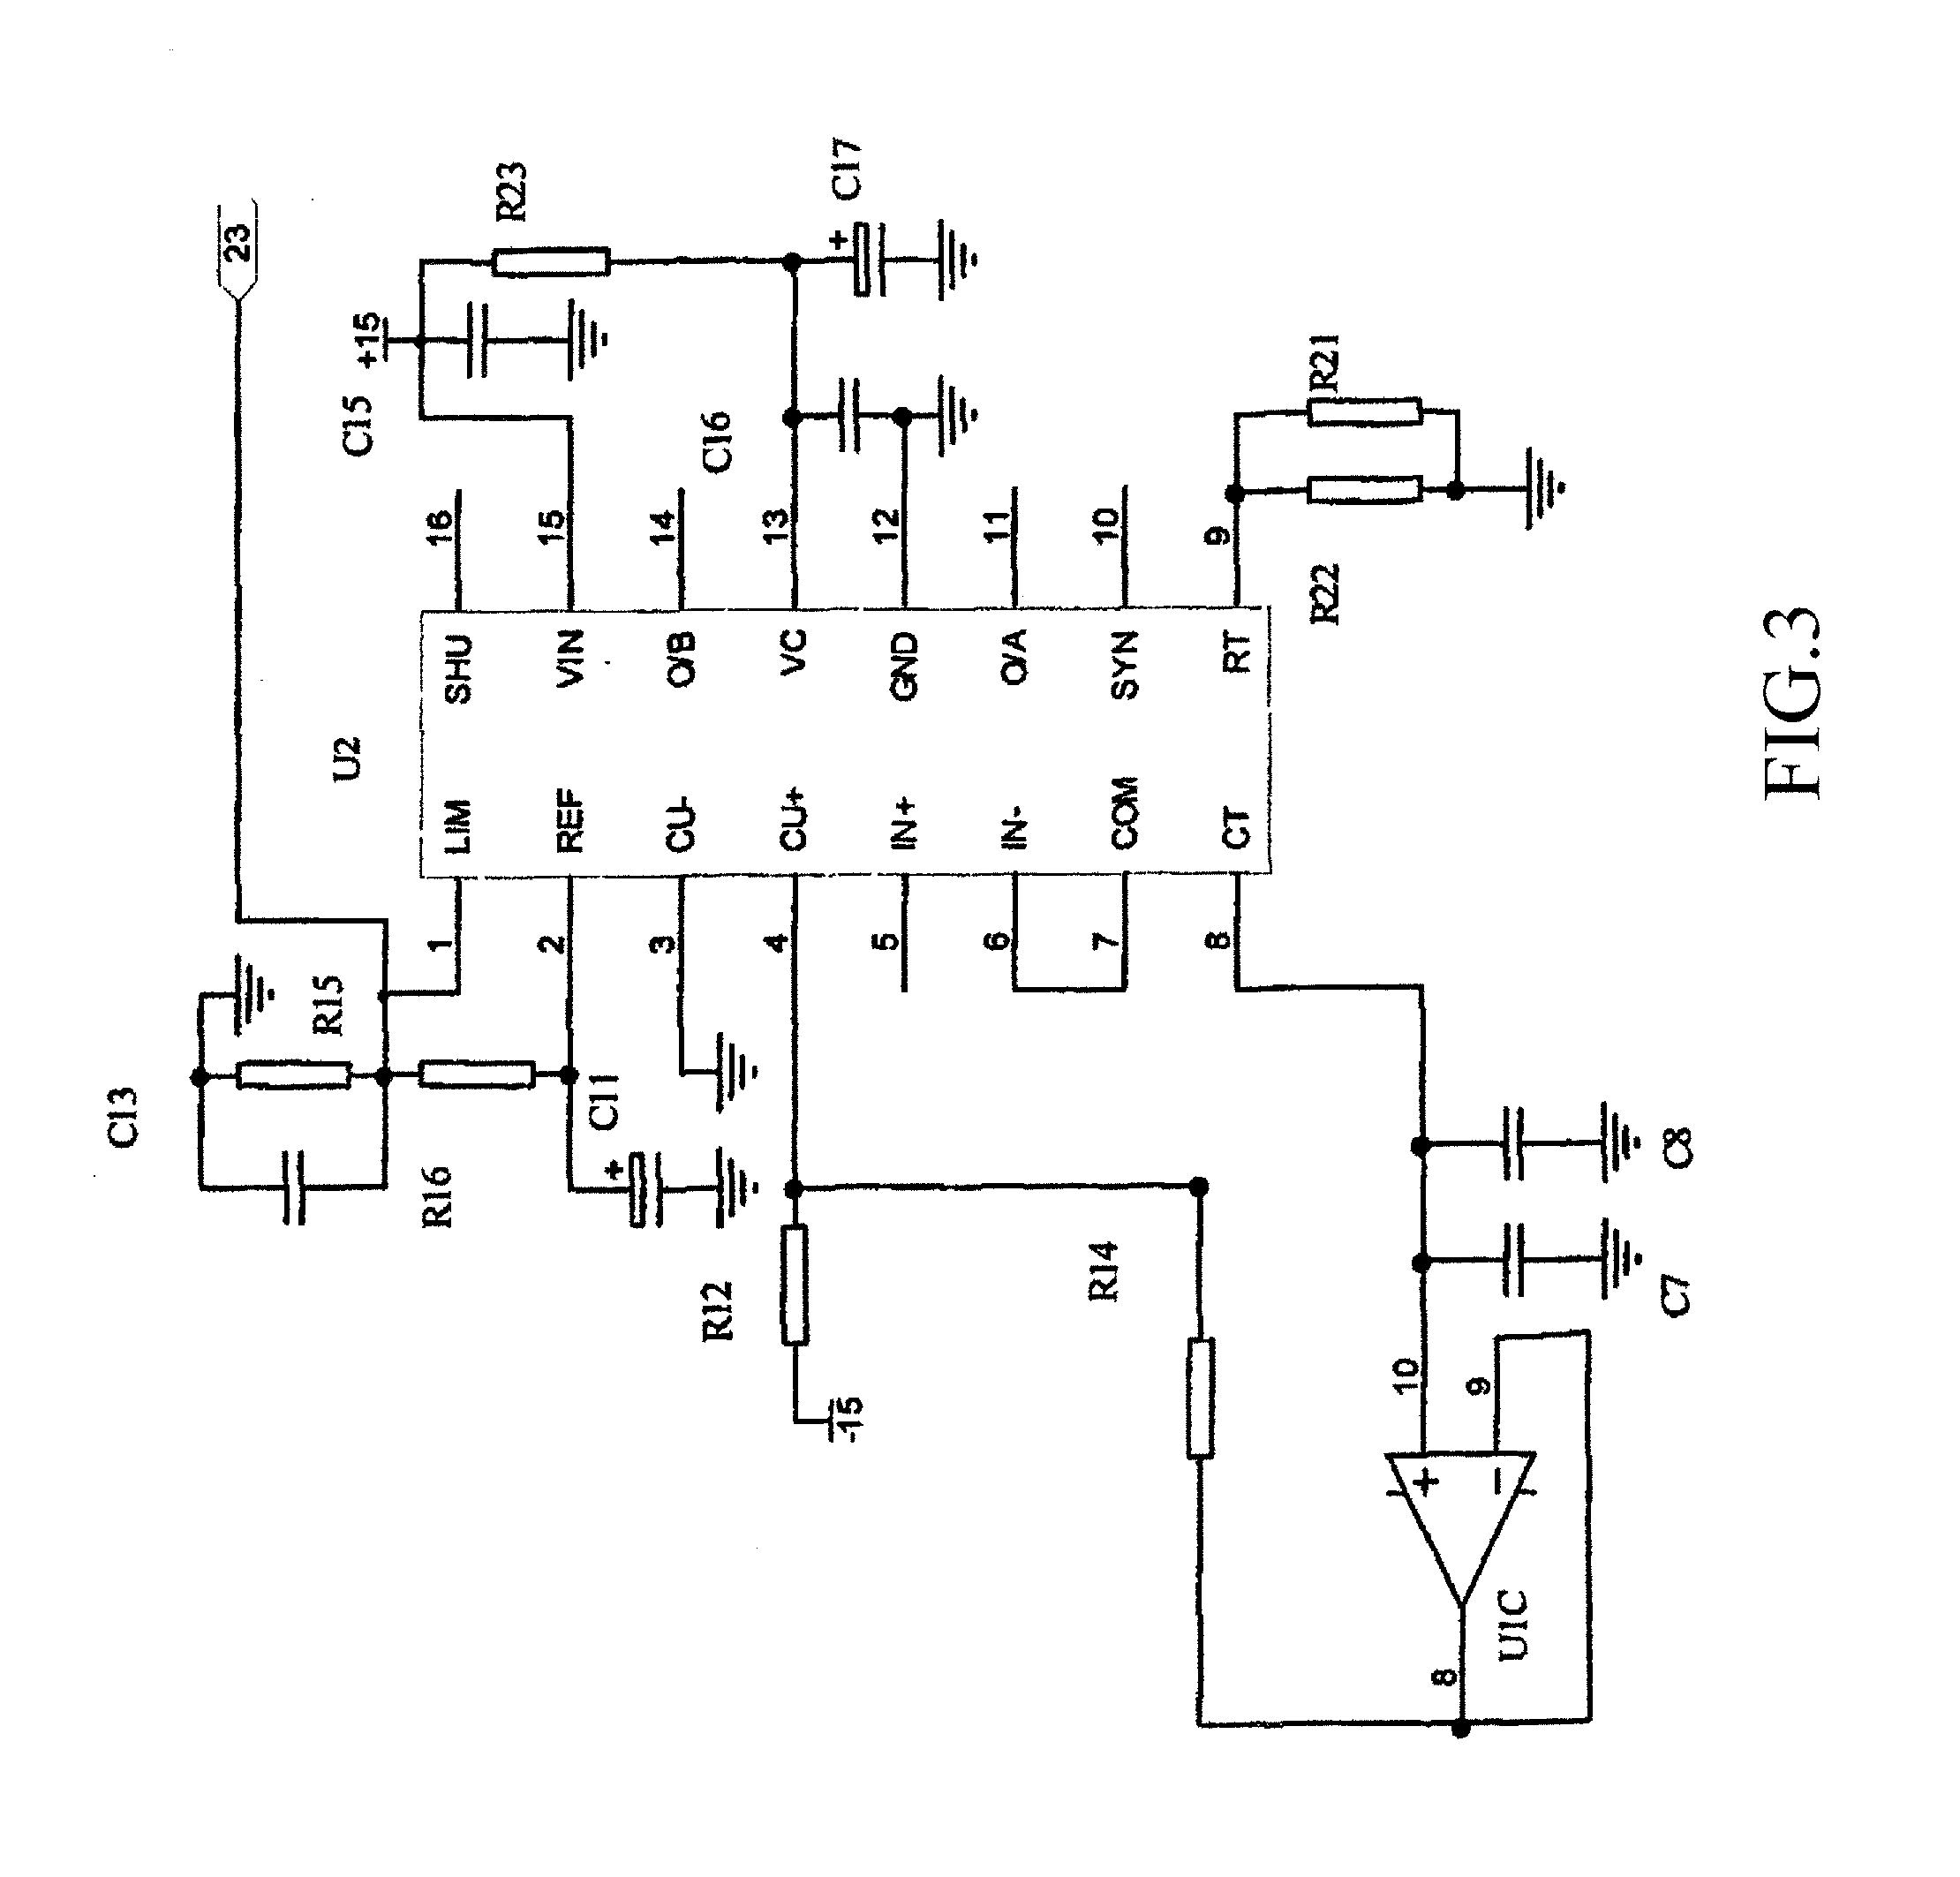 Igbt Inverter Circuit Diagram Free Wiring For You Dc To Ac Power Schematic Sine Wave G1 G2 25 Images Welding